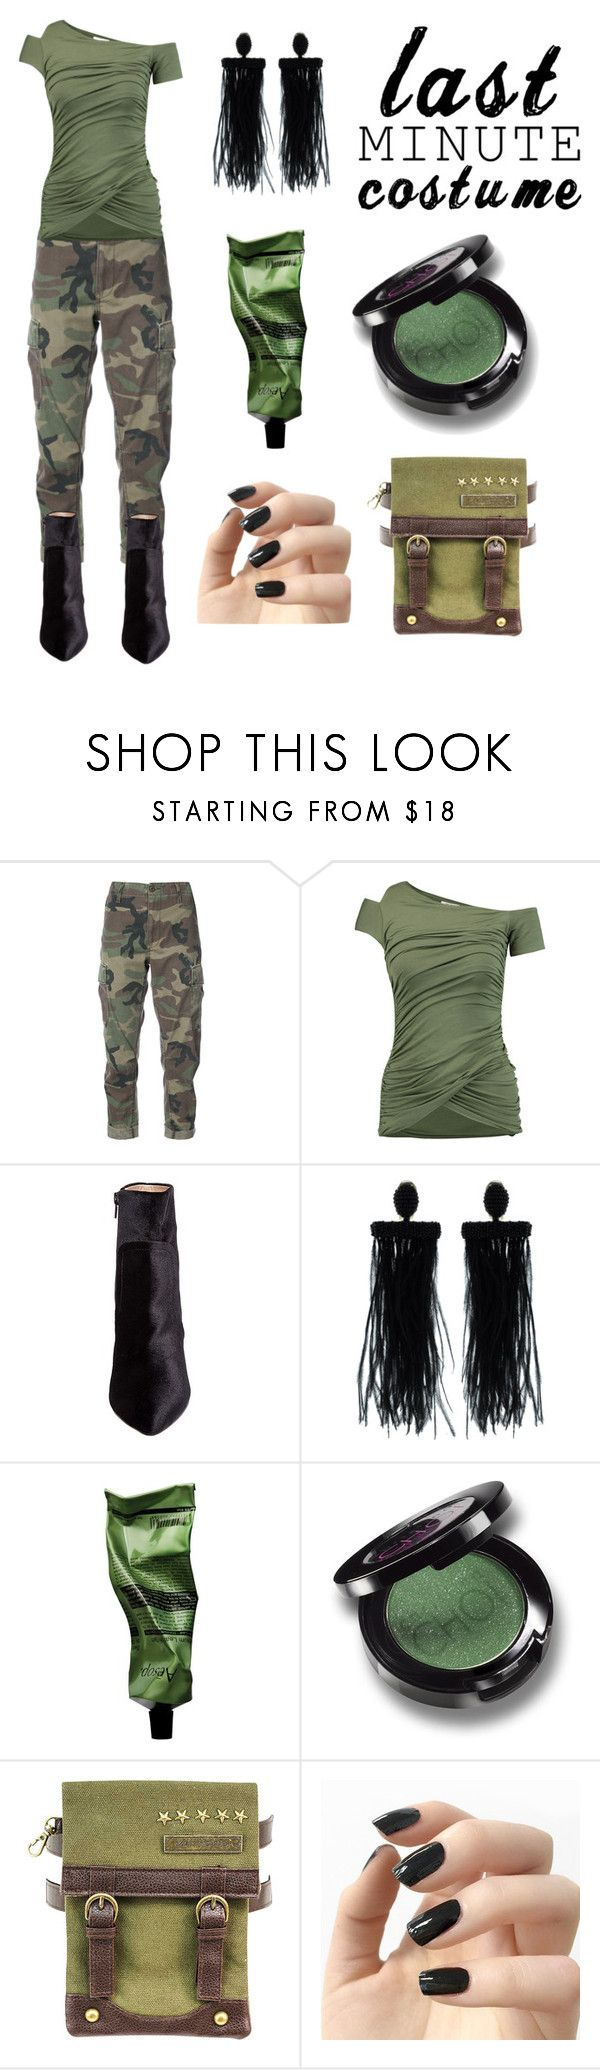 """""""last"""" by ines-i-g ❤ liked on Polyvore featuring RE/DONE, Bailey 44, Betsey Johnson, Oscar de la Renta, Aesop, Christina Choi Cosmetics and Incoco"""